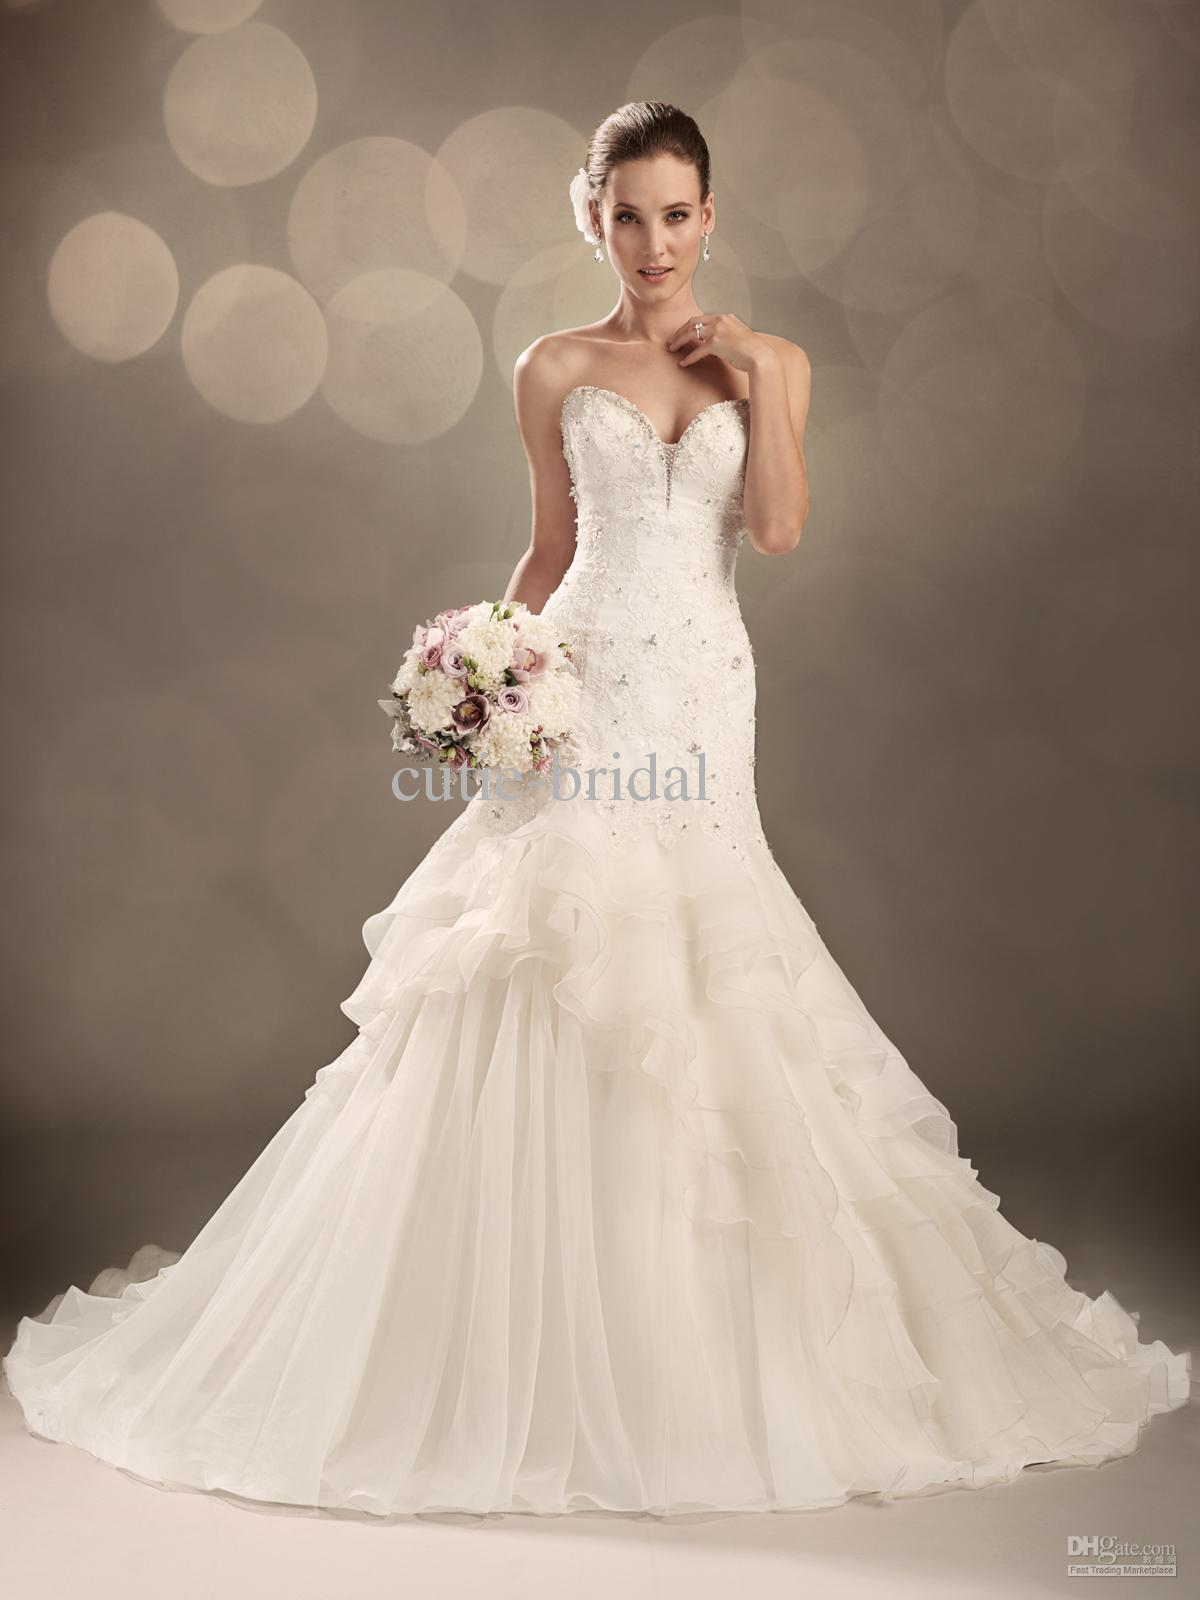 Mutable 2015 Lace Beads Ivory Wedding Dress Sexy Sweeart Necklinebridal Couture Casual Wedding Dress From Cutie 2015 Lace Beads Ivory Wedding Dress Sexy Sweeart wedding dress Ivory Wedding Dress